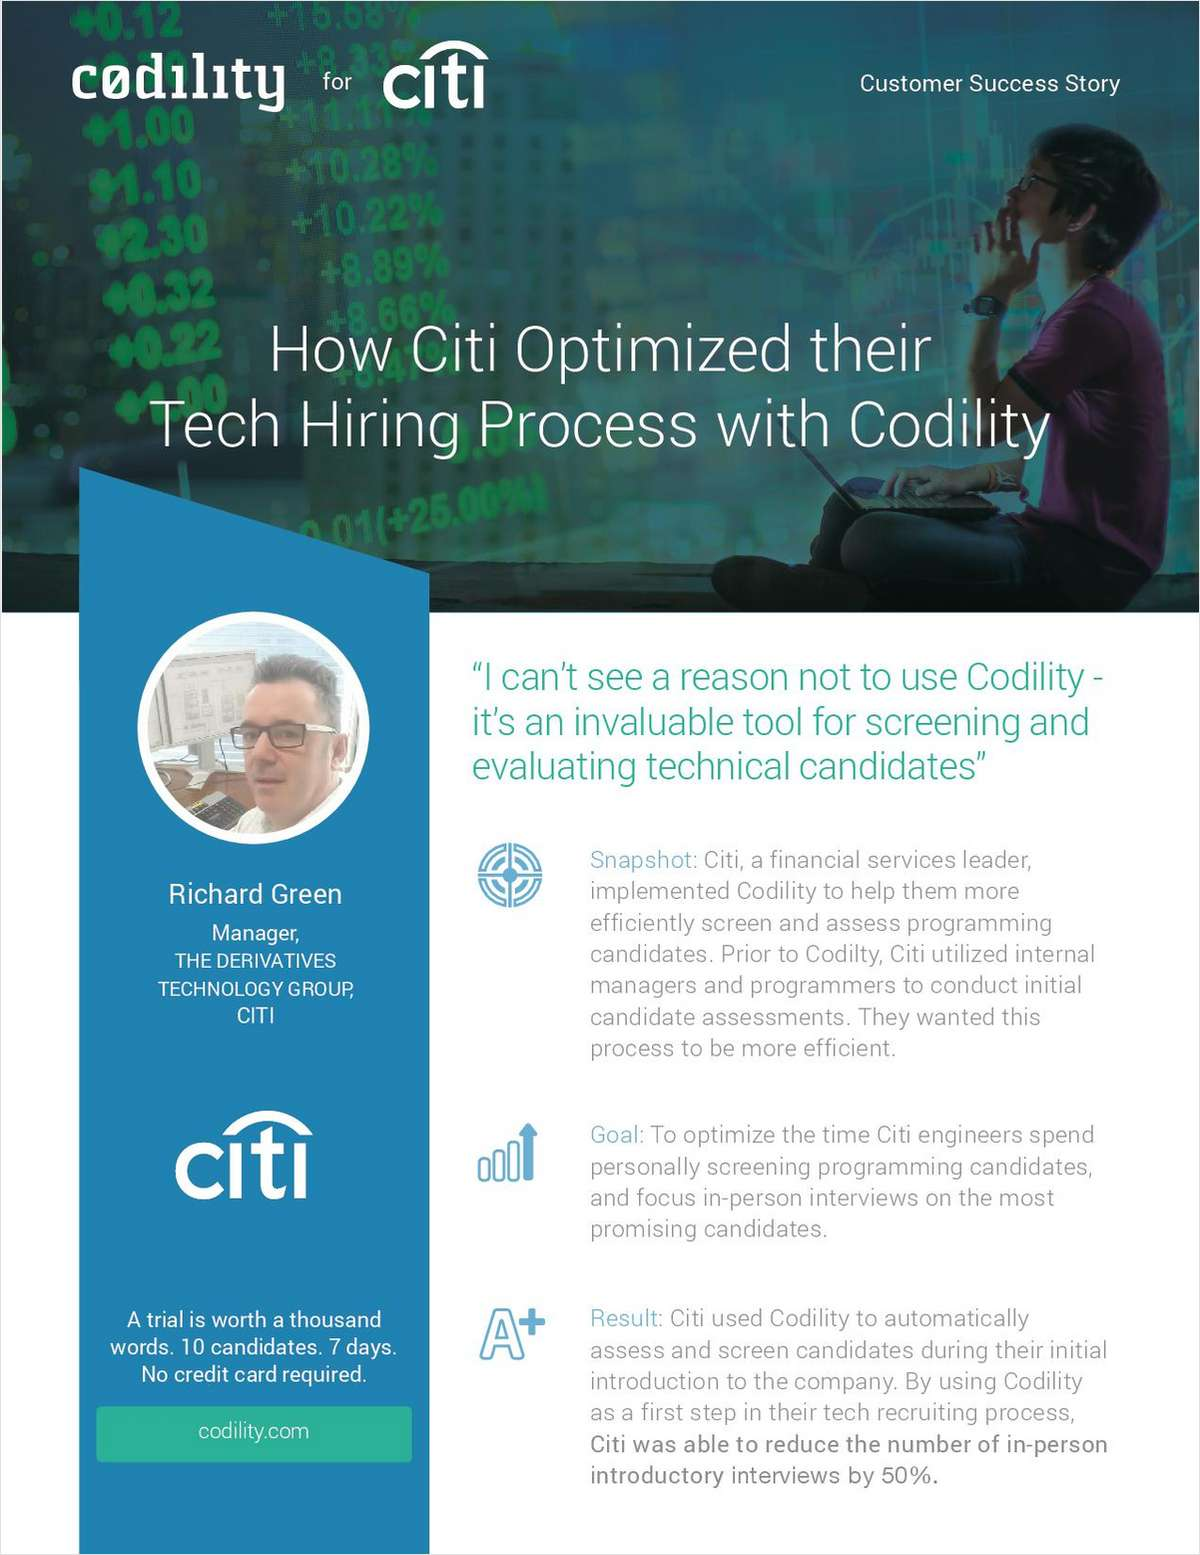 How Citi Optimized their Tech Hiring Process with Codility, Free